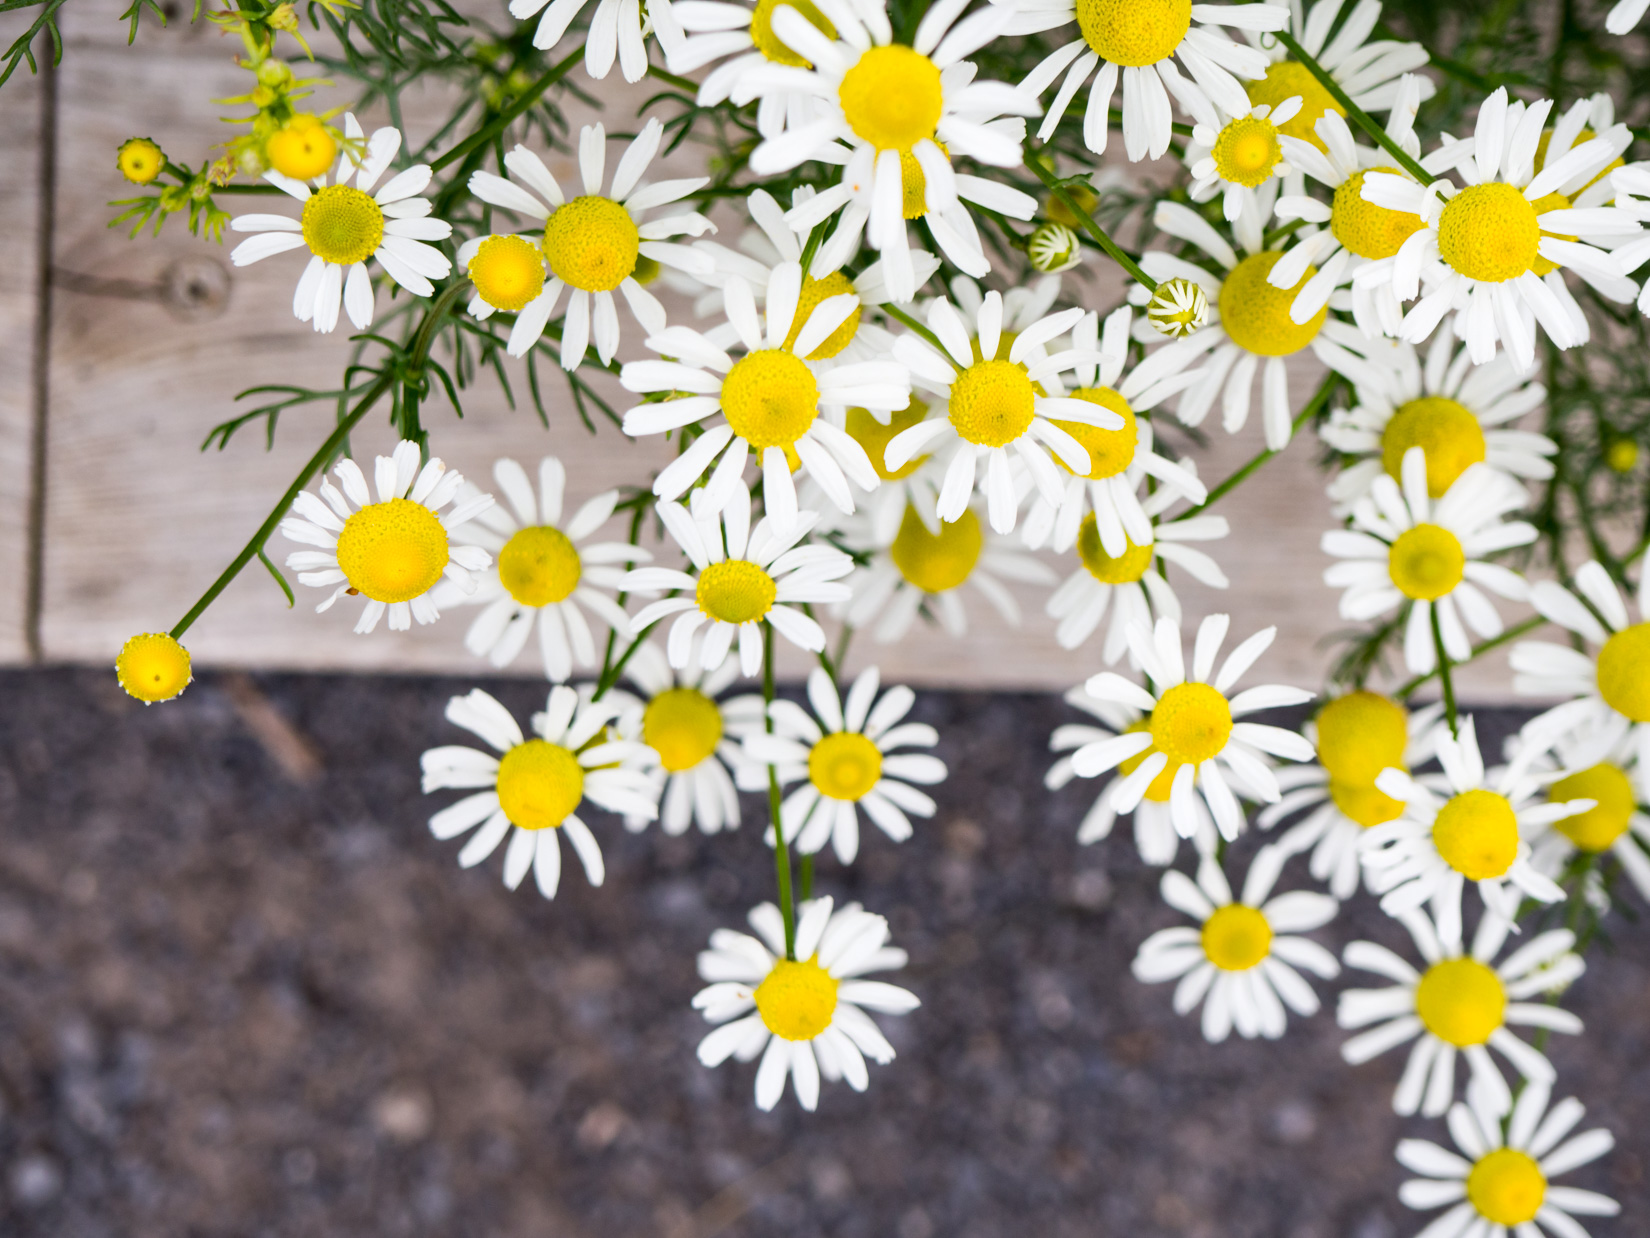 Yellow and White Flowers Over Sidewalk